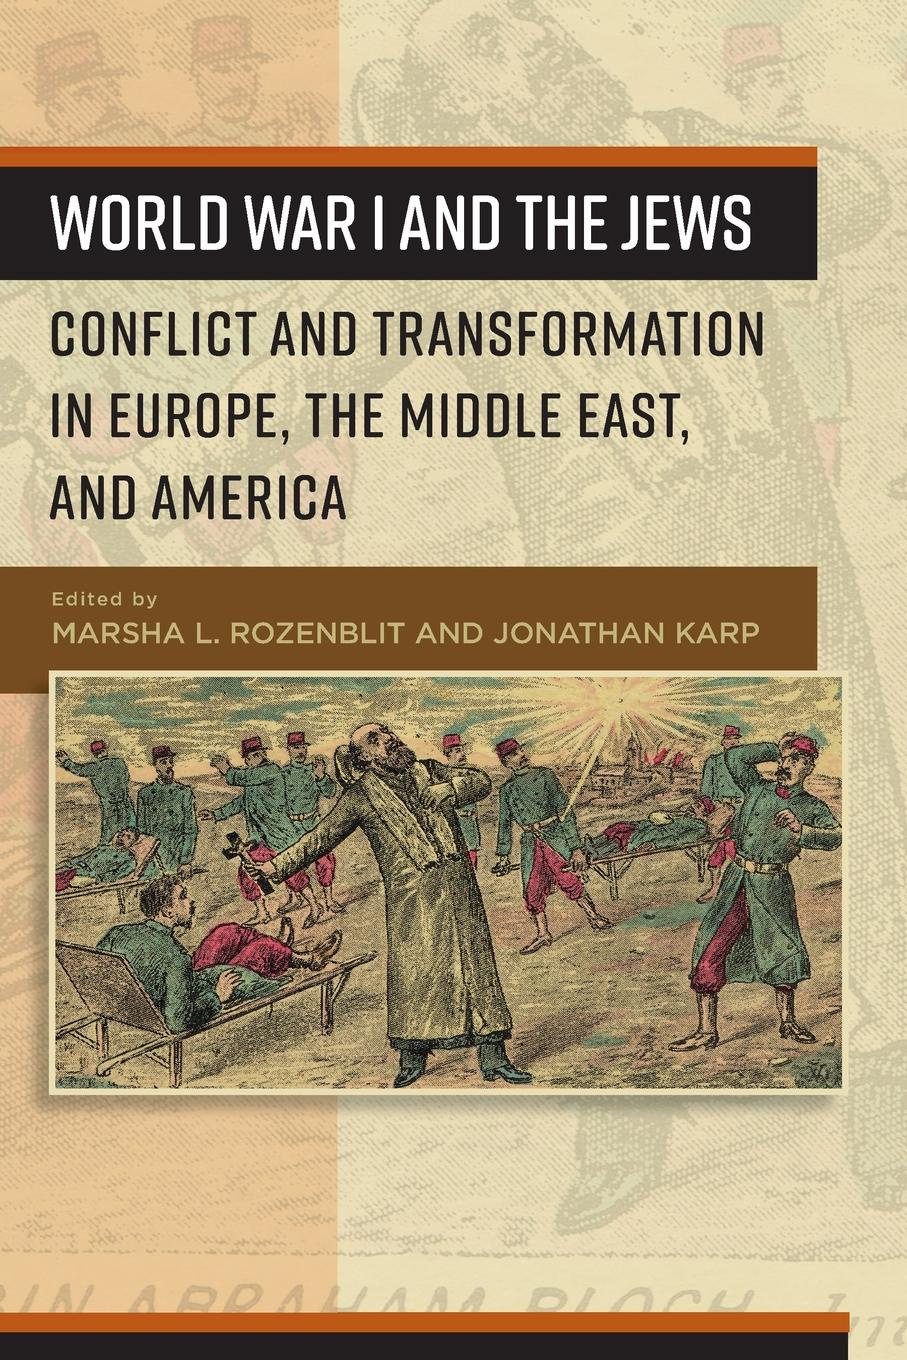 World War I and the Jews. Conflict and Transformation in Europe, the Middle East, and America